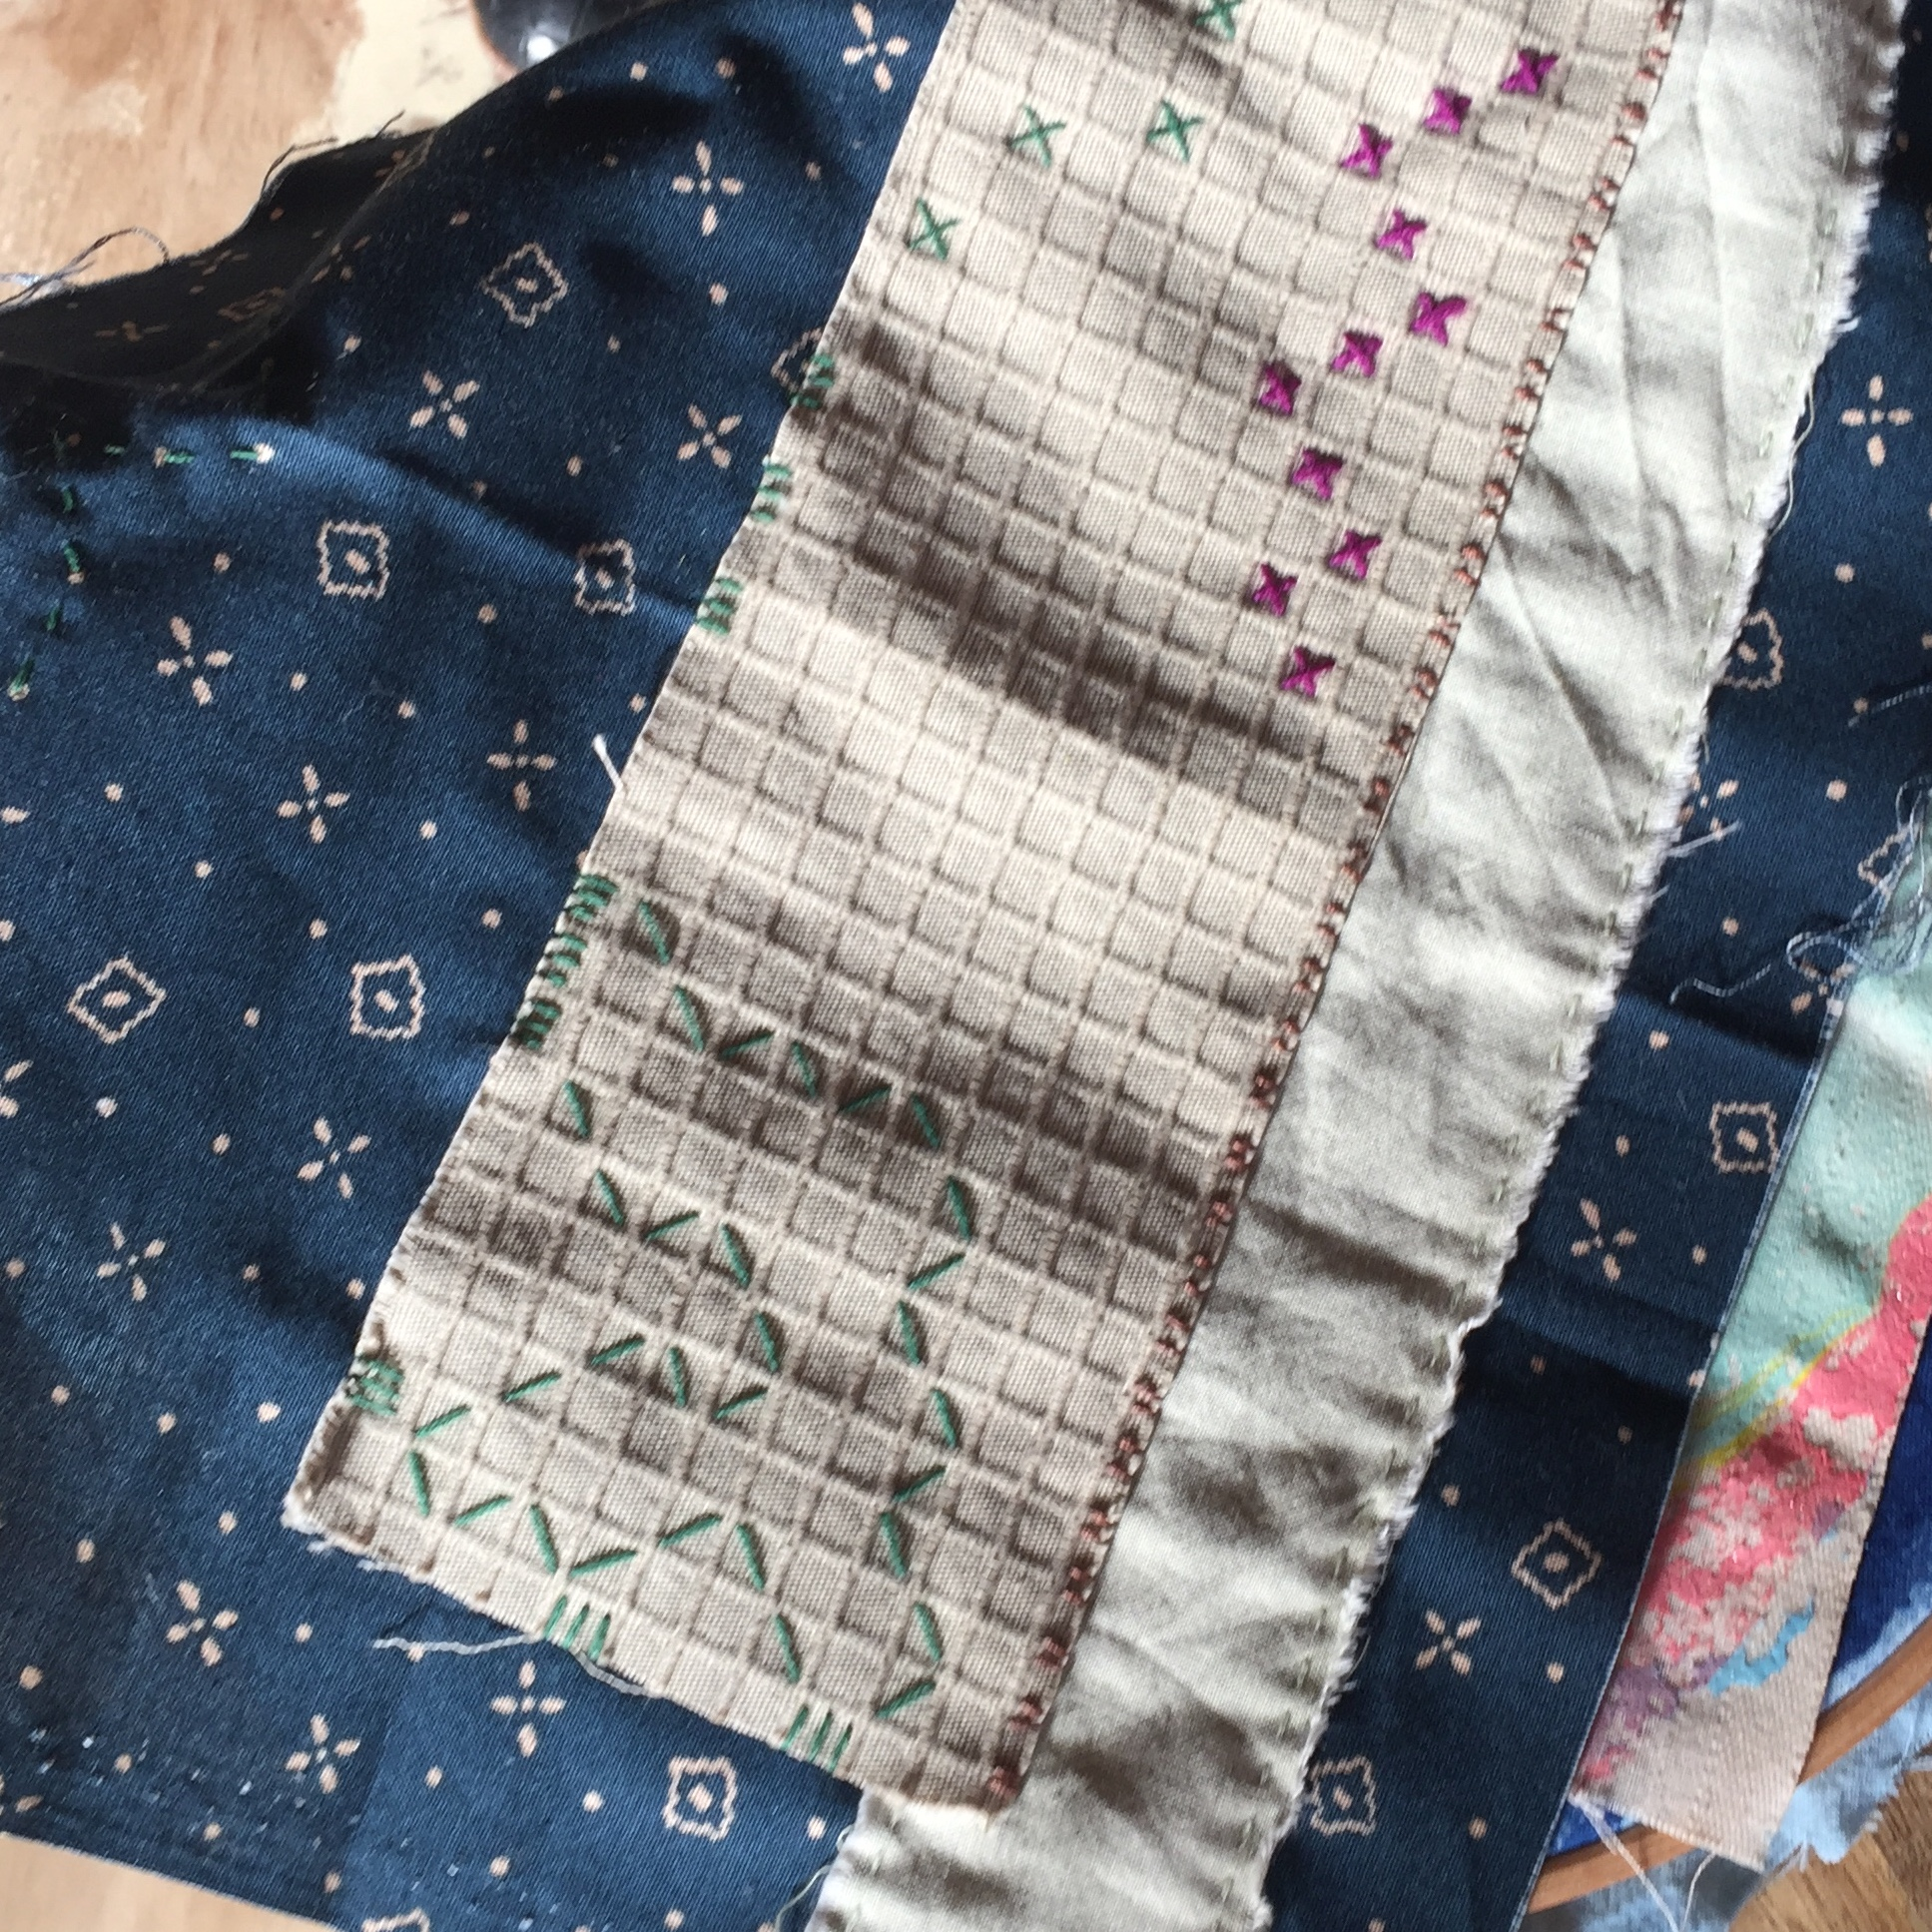 cotton fabric collage slow stitching embroidery